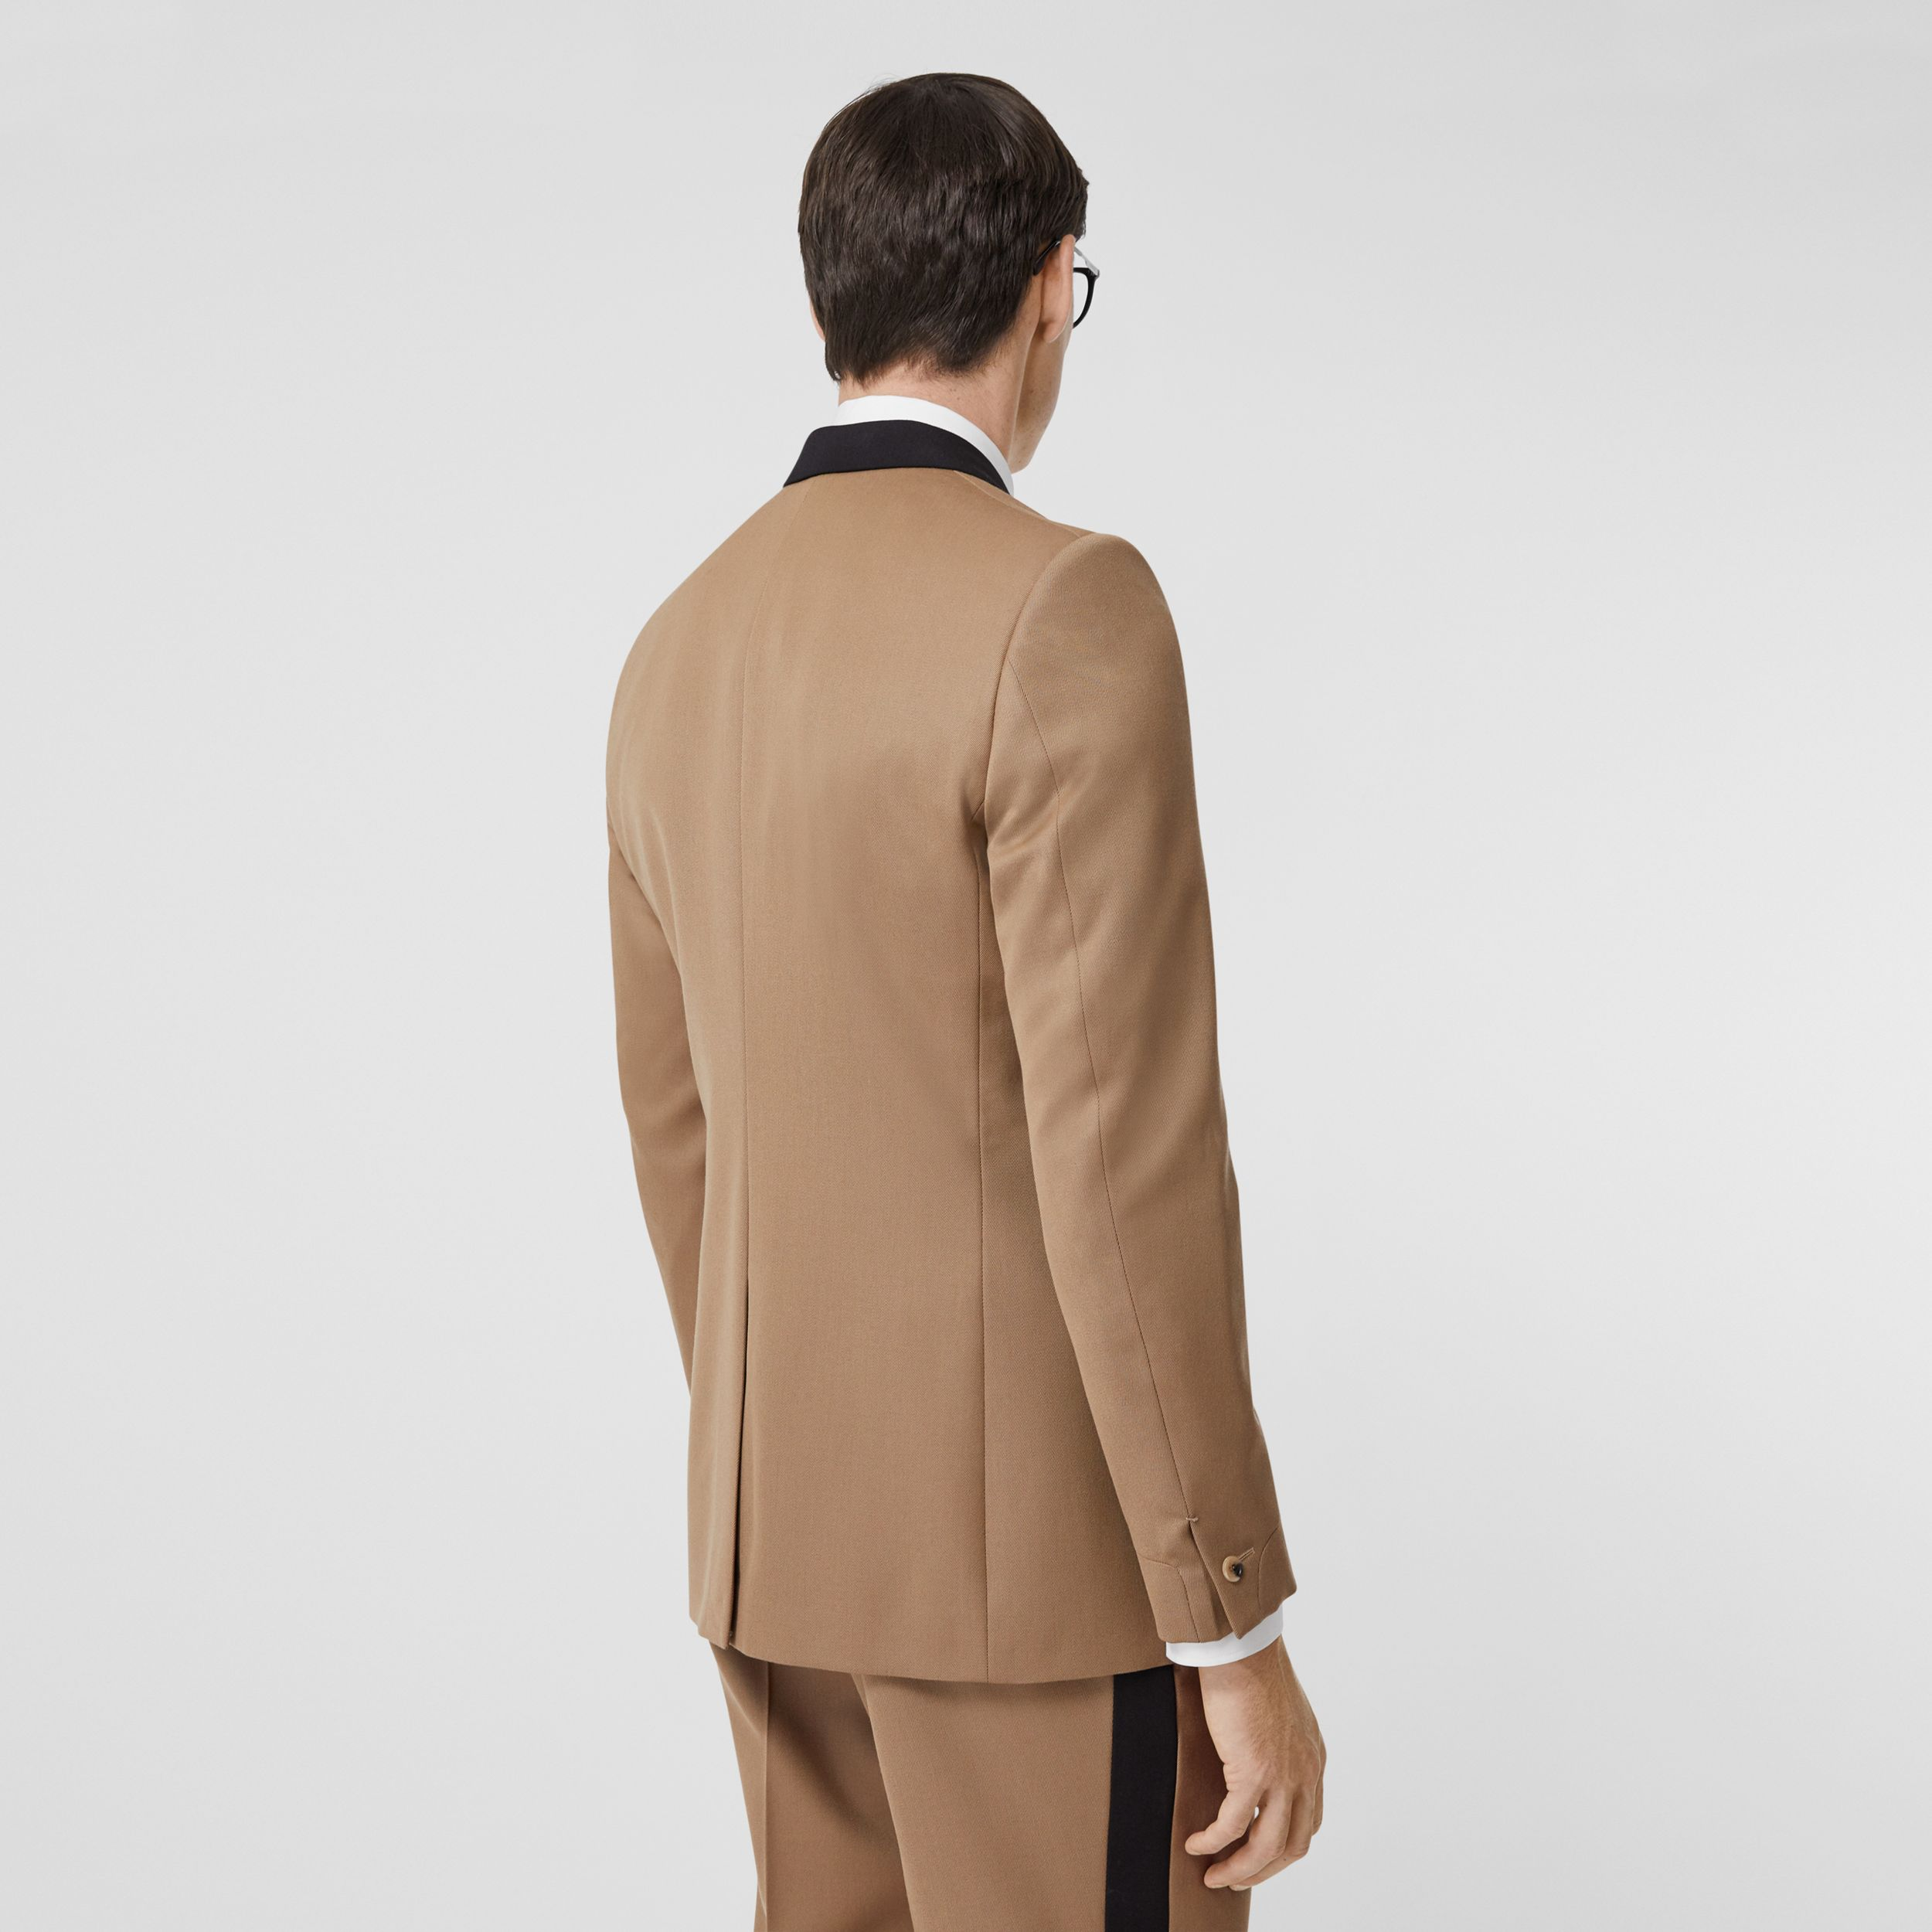 Classic Fit Two-tone Wool Tailored Jacket in Camel - Men | Burberry - 3